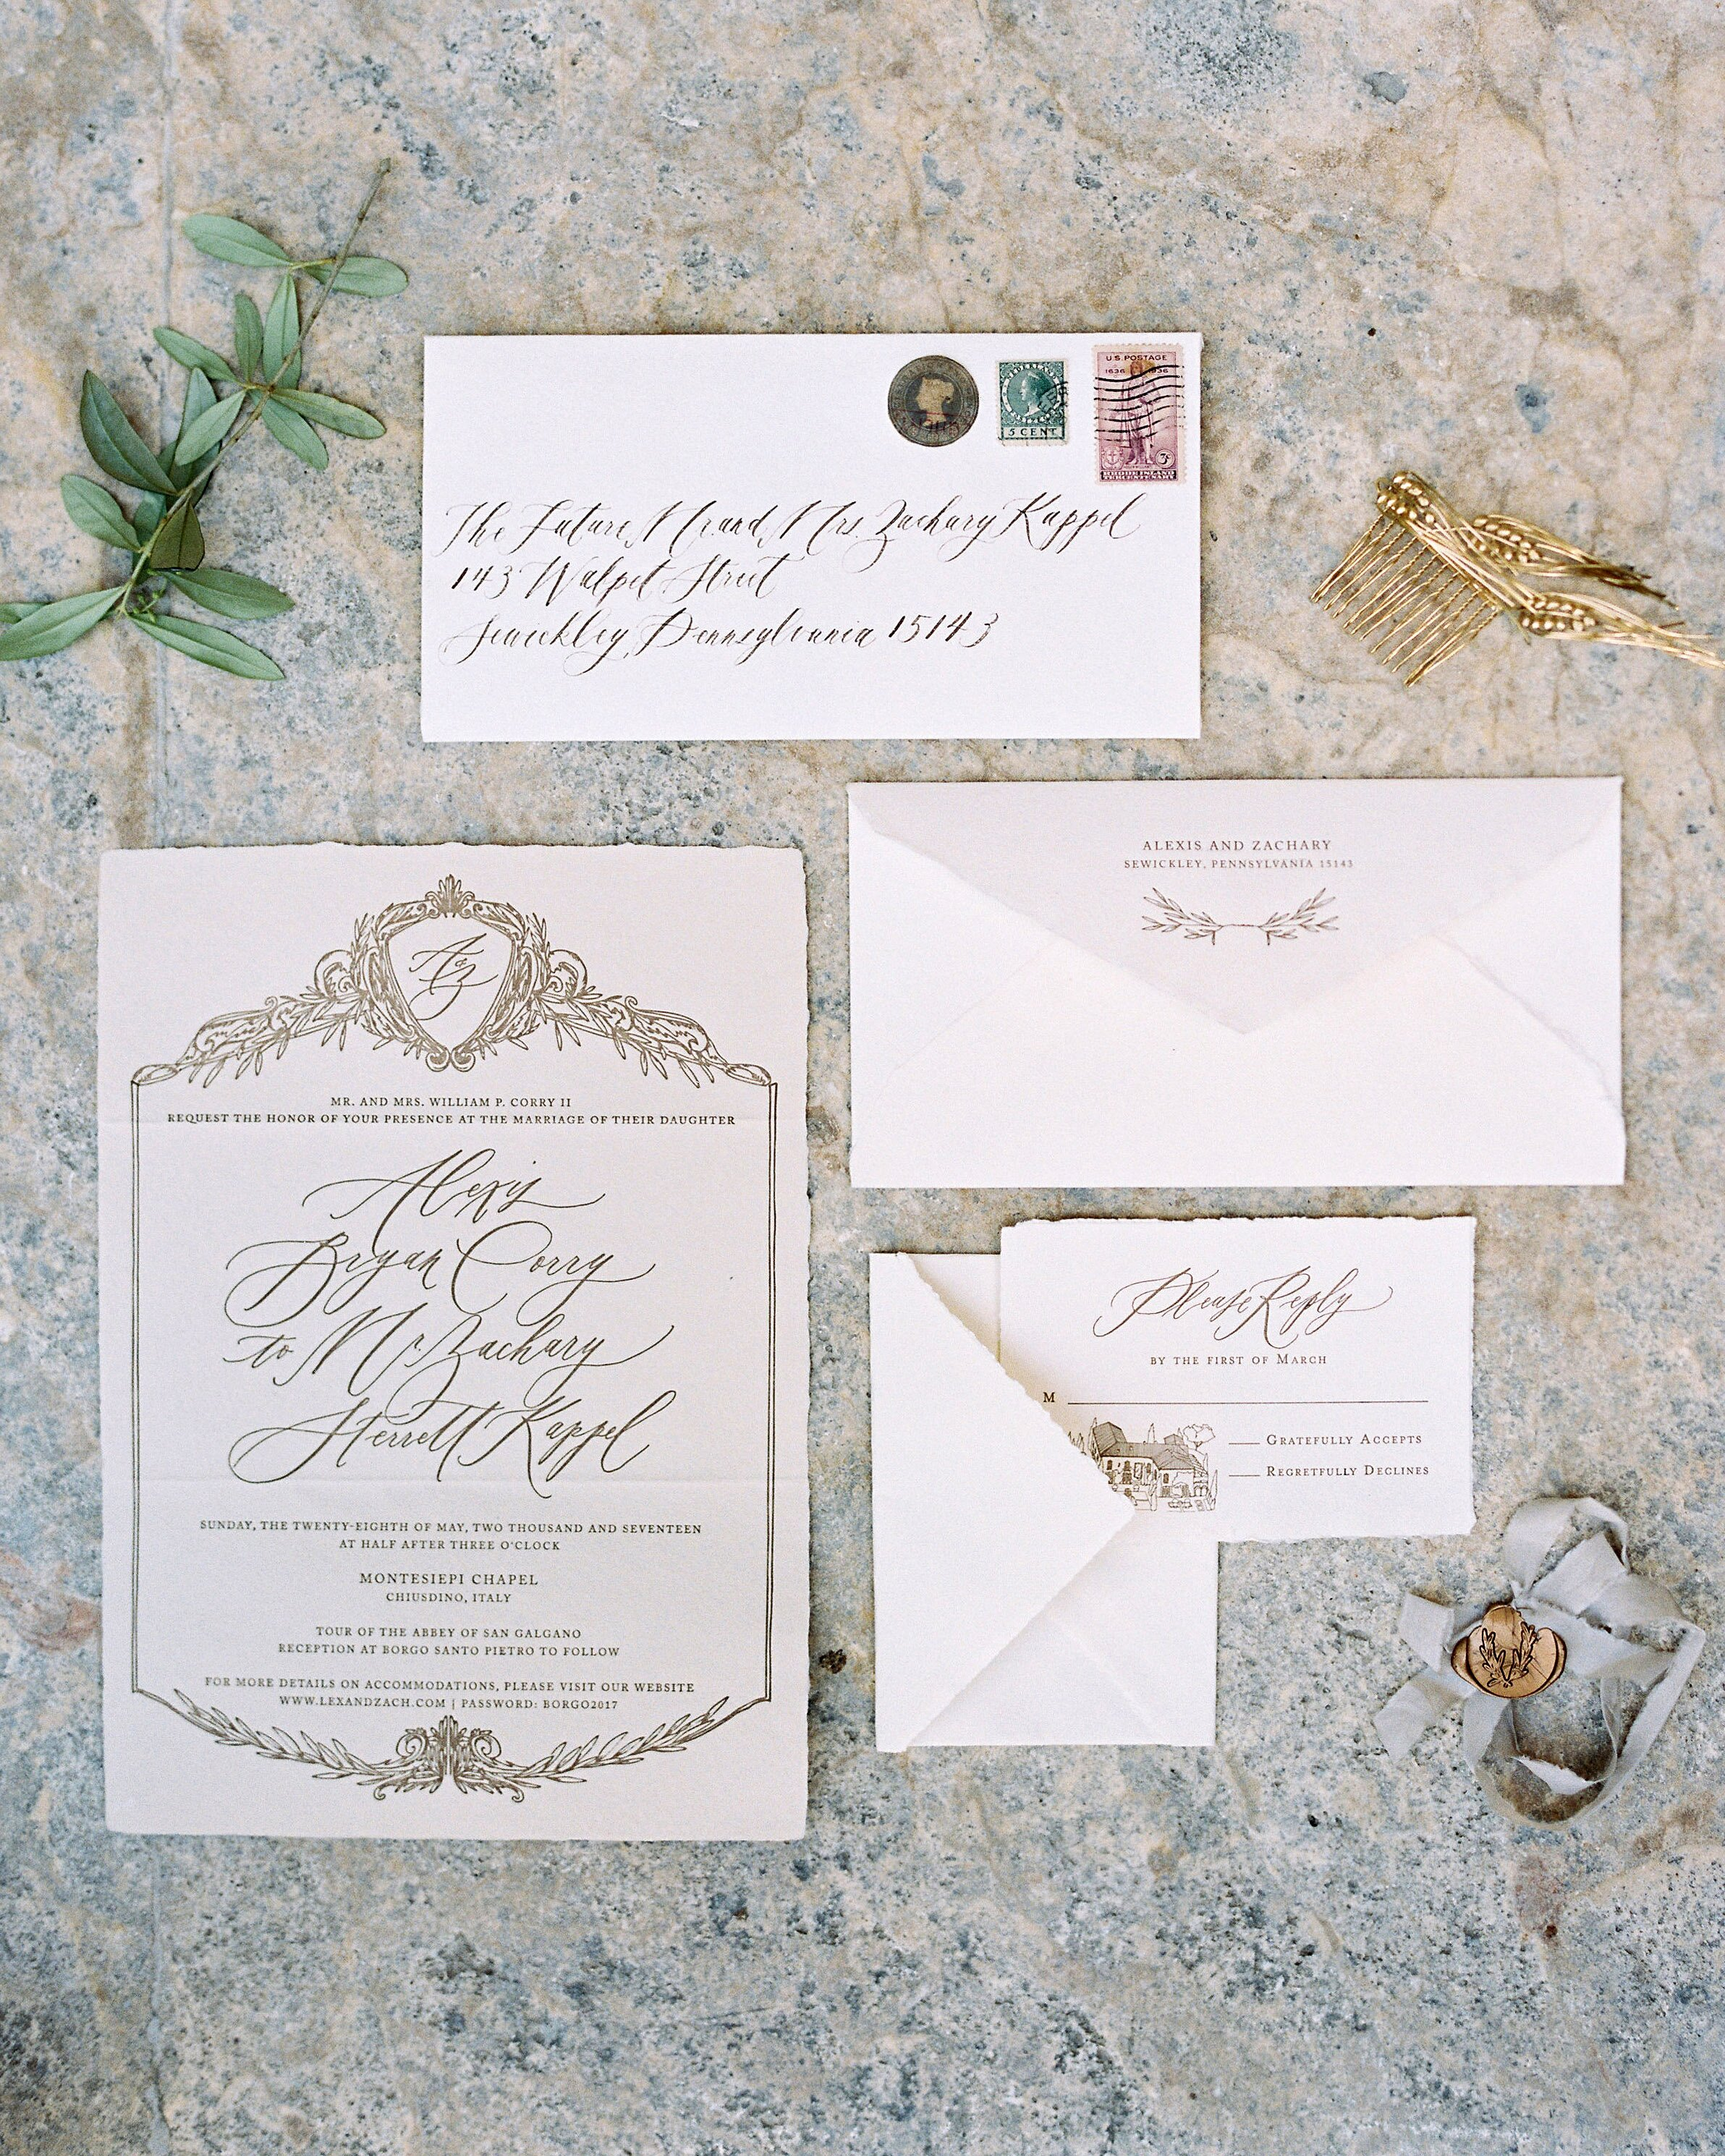 Why You Should Weigh Any Invite Sample Before Ordering | Martha ...